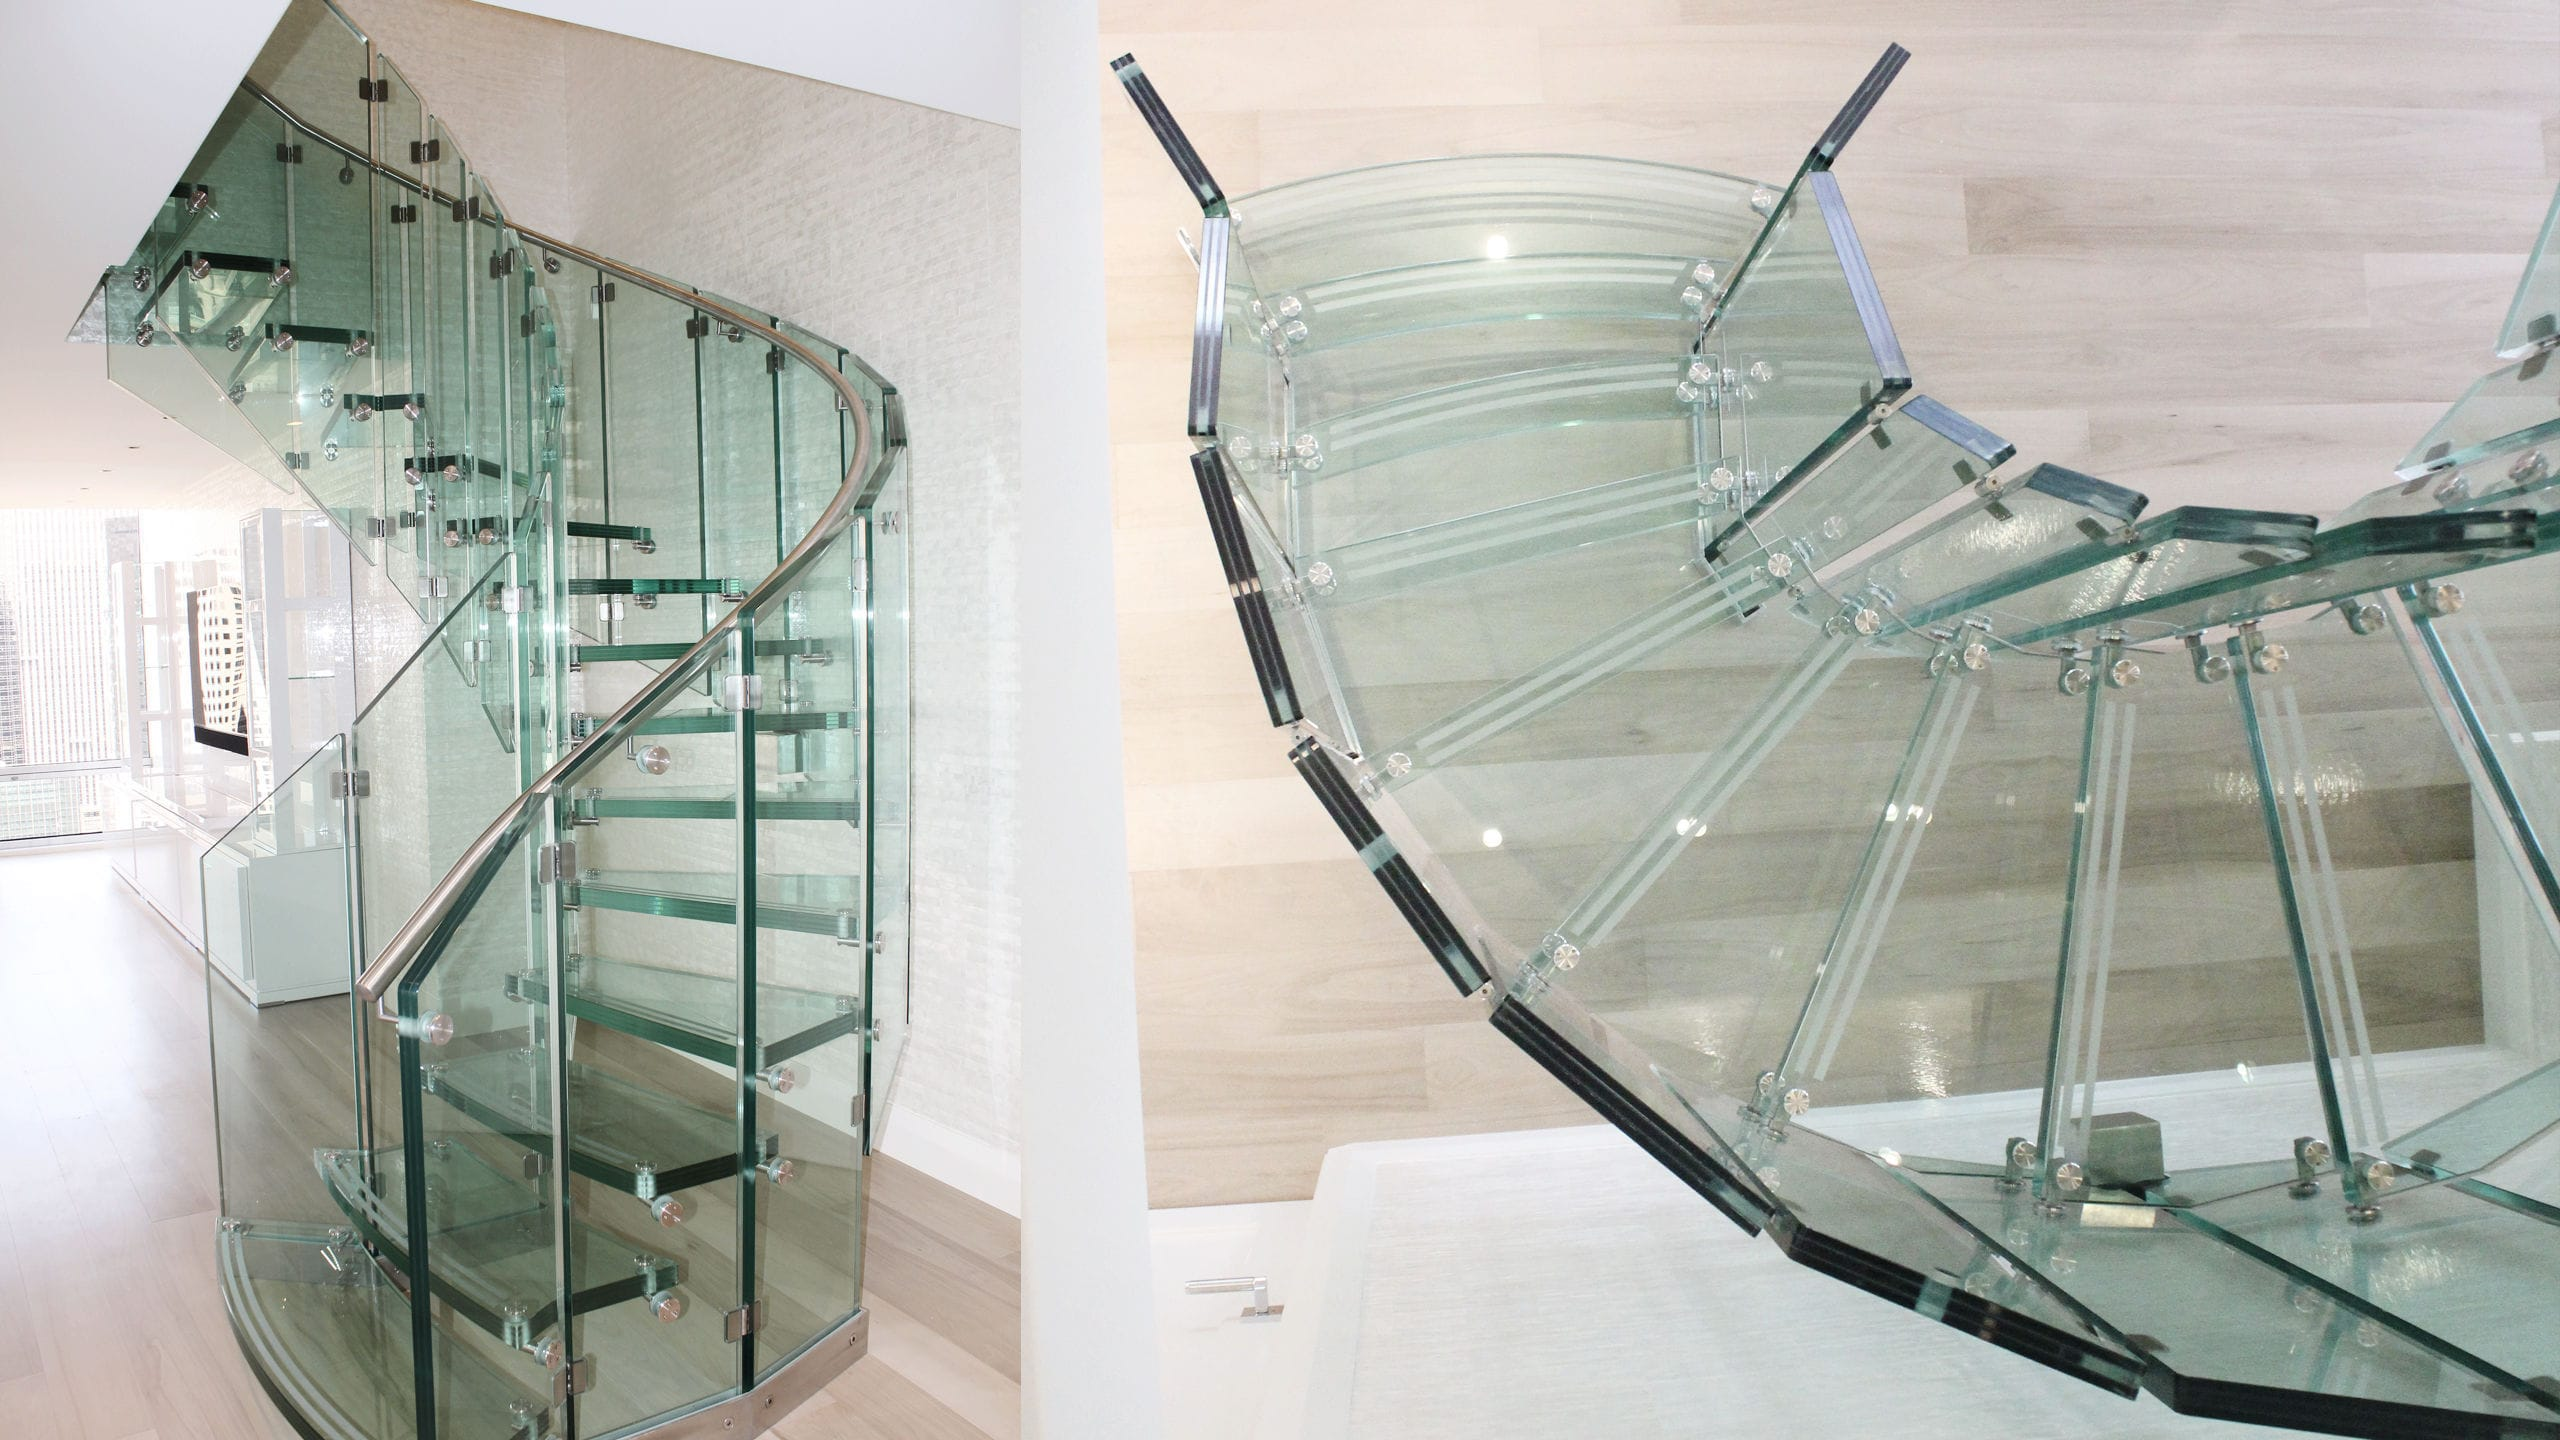 Helical staircase - FLY design for small spaces - Siller Stairs - glass frame / glass steps / without risers